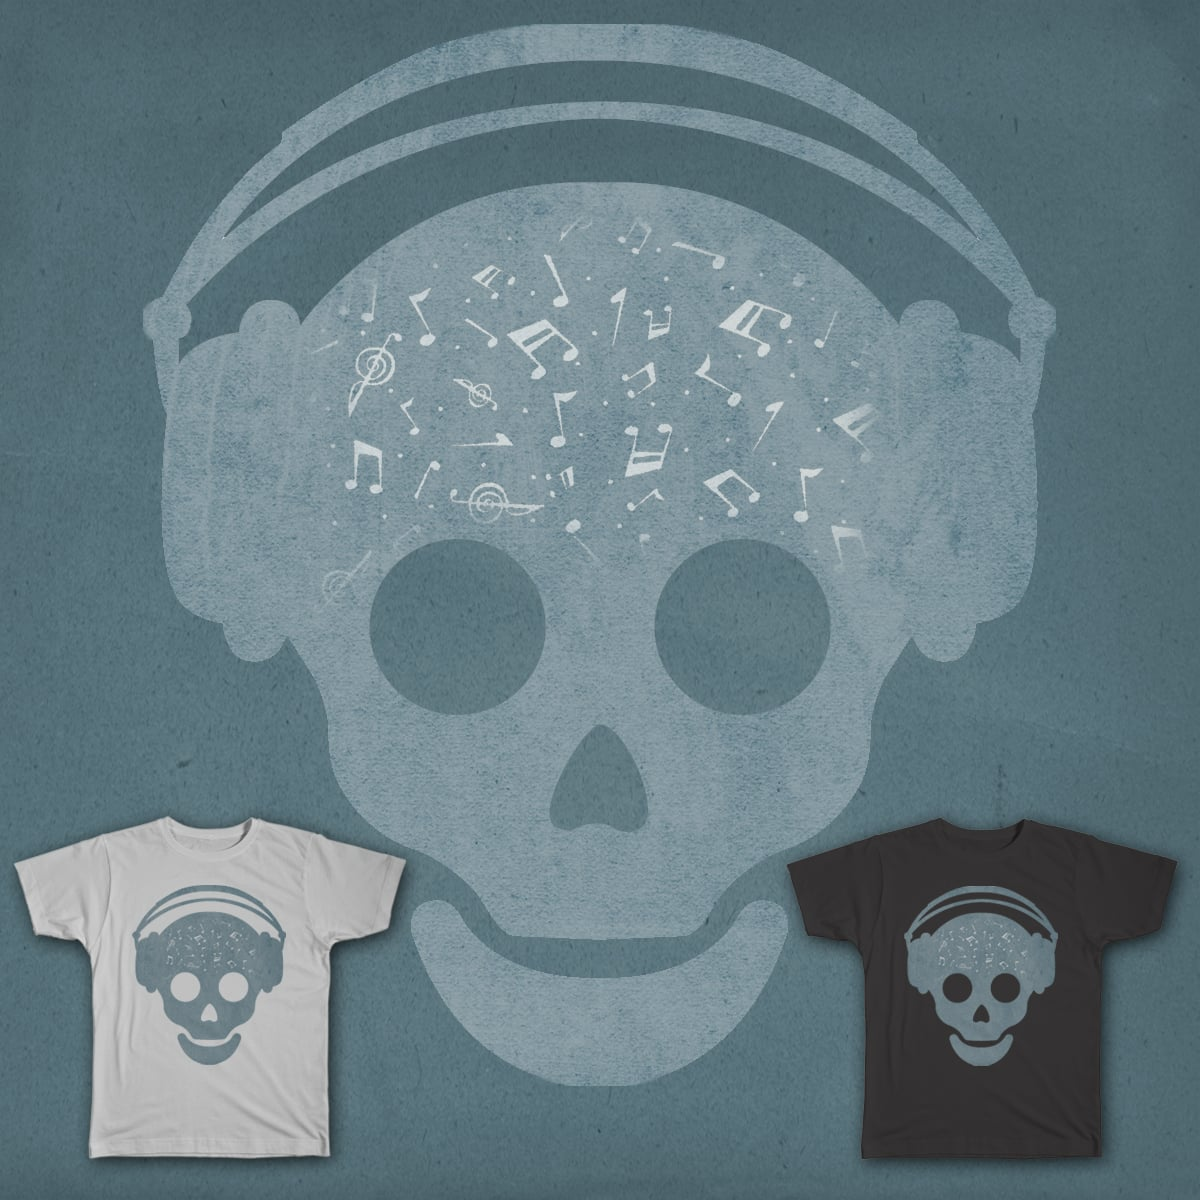 The Music of Visitors by ammooina on Threadless